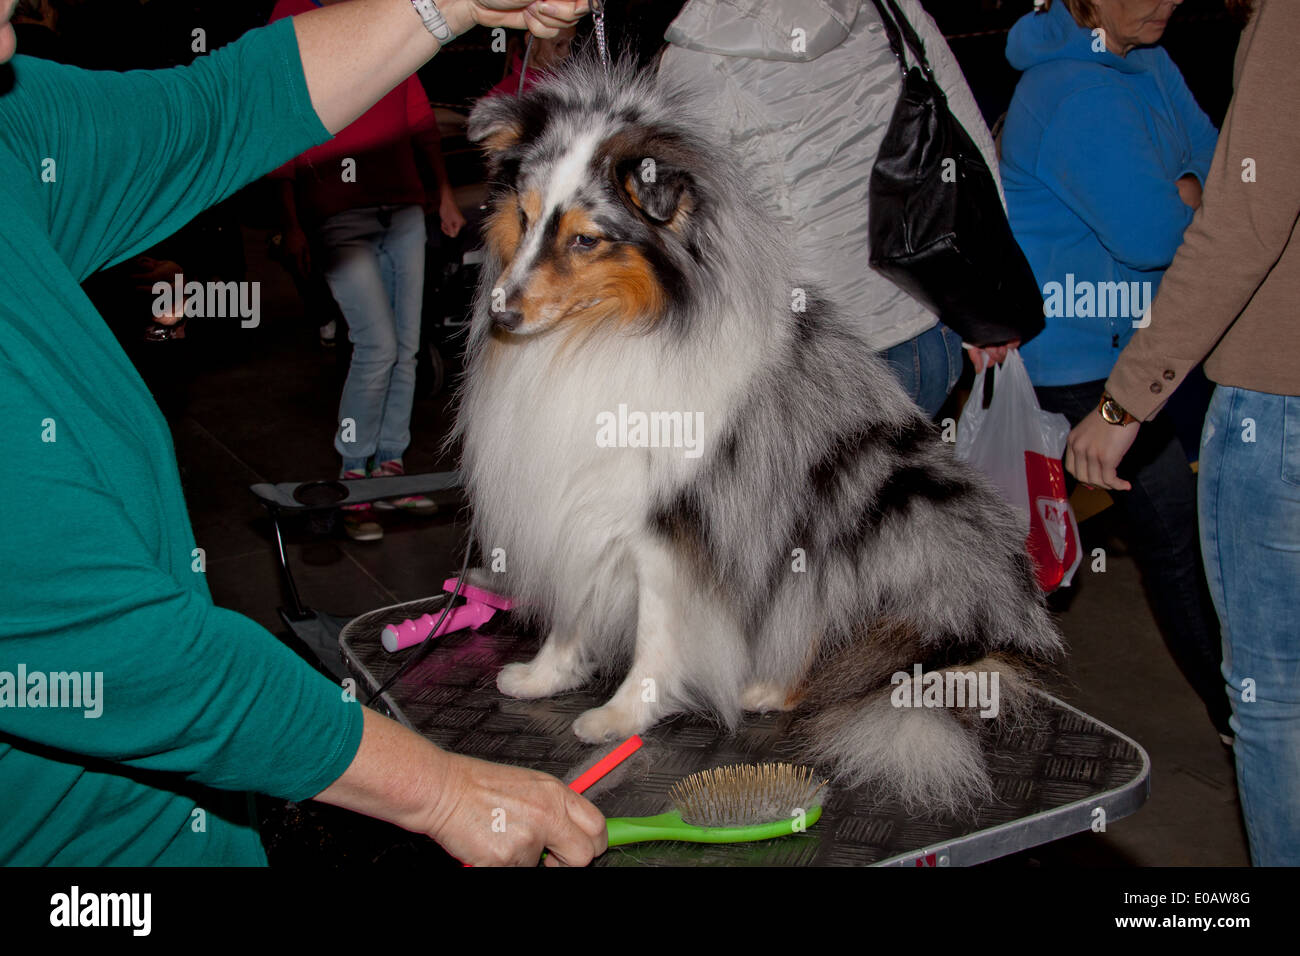 Dog on the grooming table at the international dog show in Prague 2014. - Stock Image